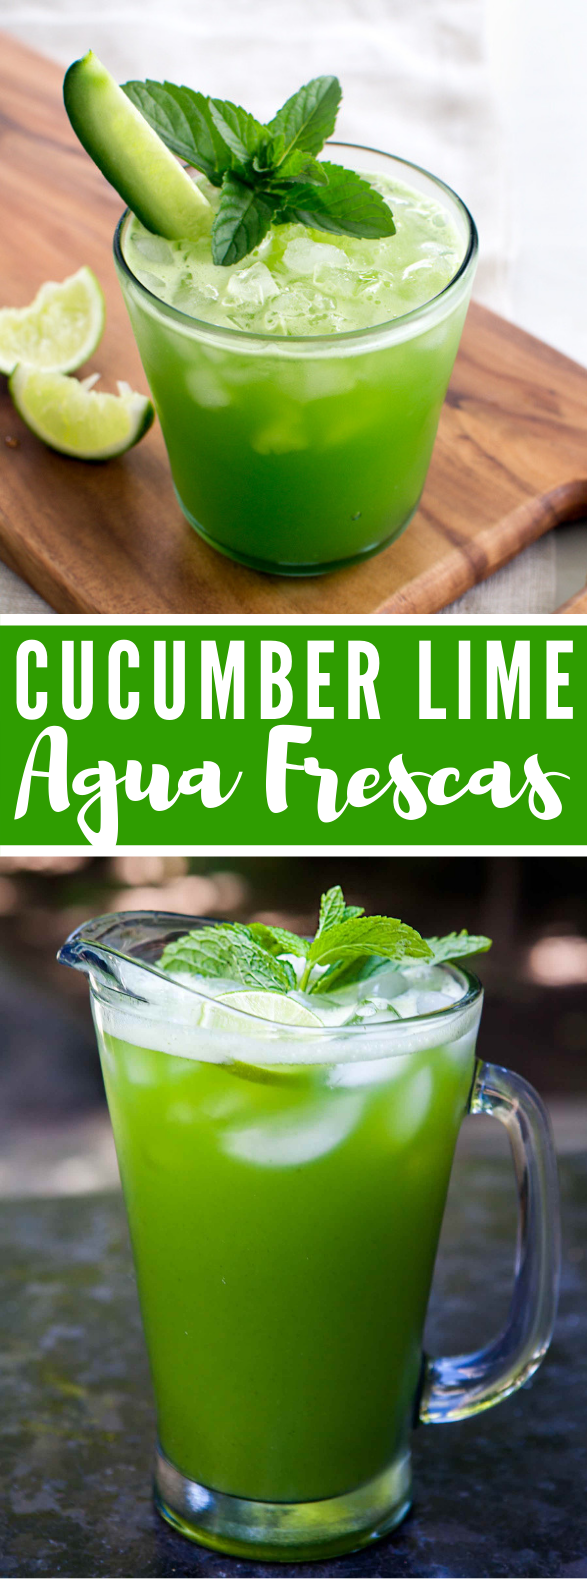 CUCUMBER LIME AGUA FRESCAS #drinks #beverage